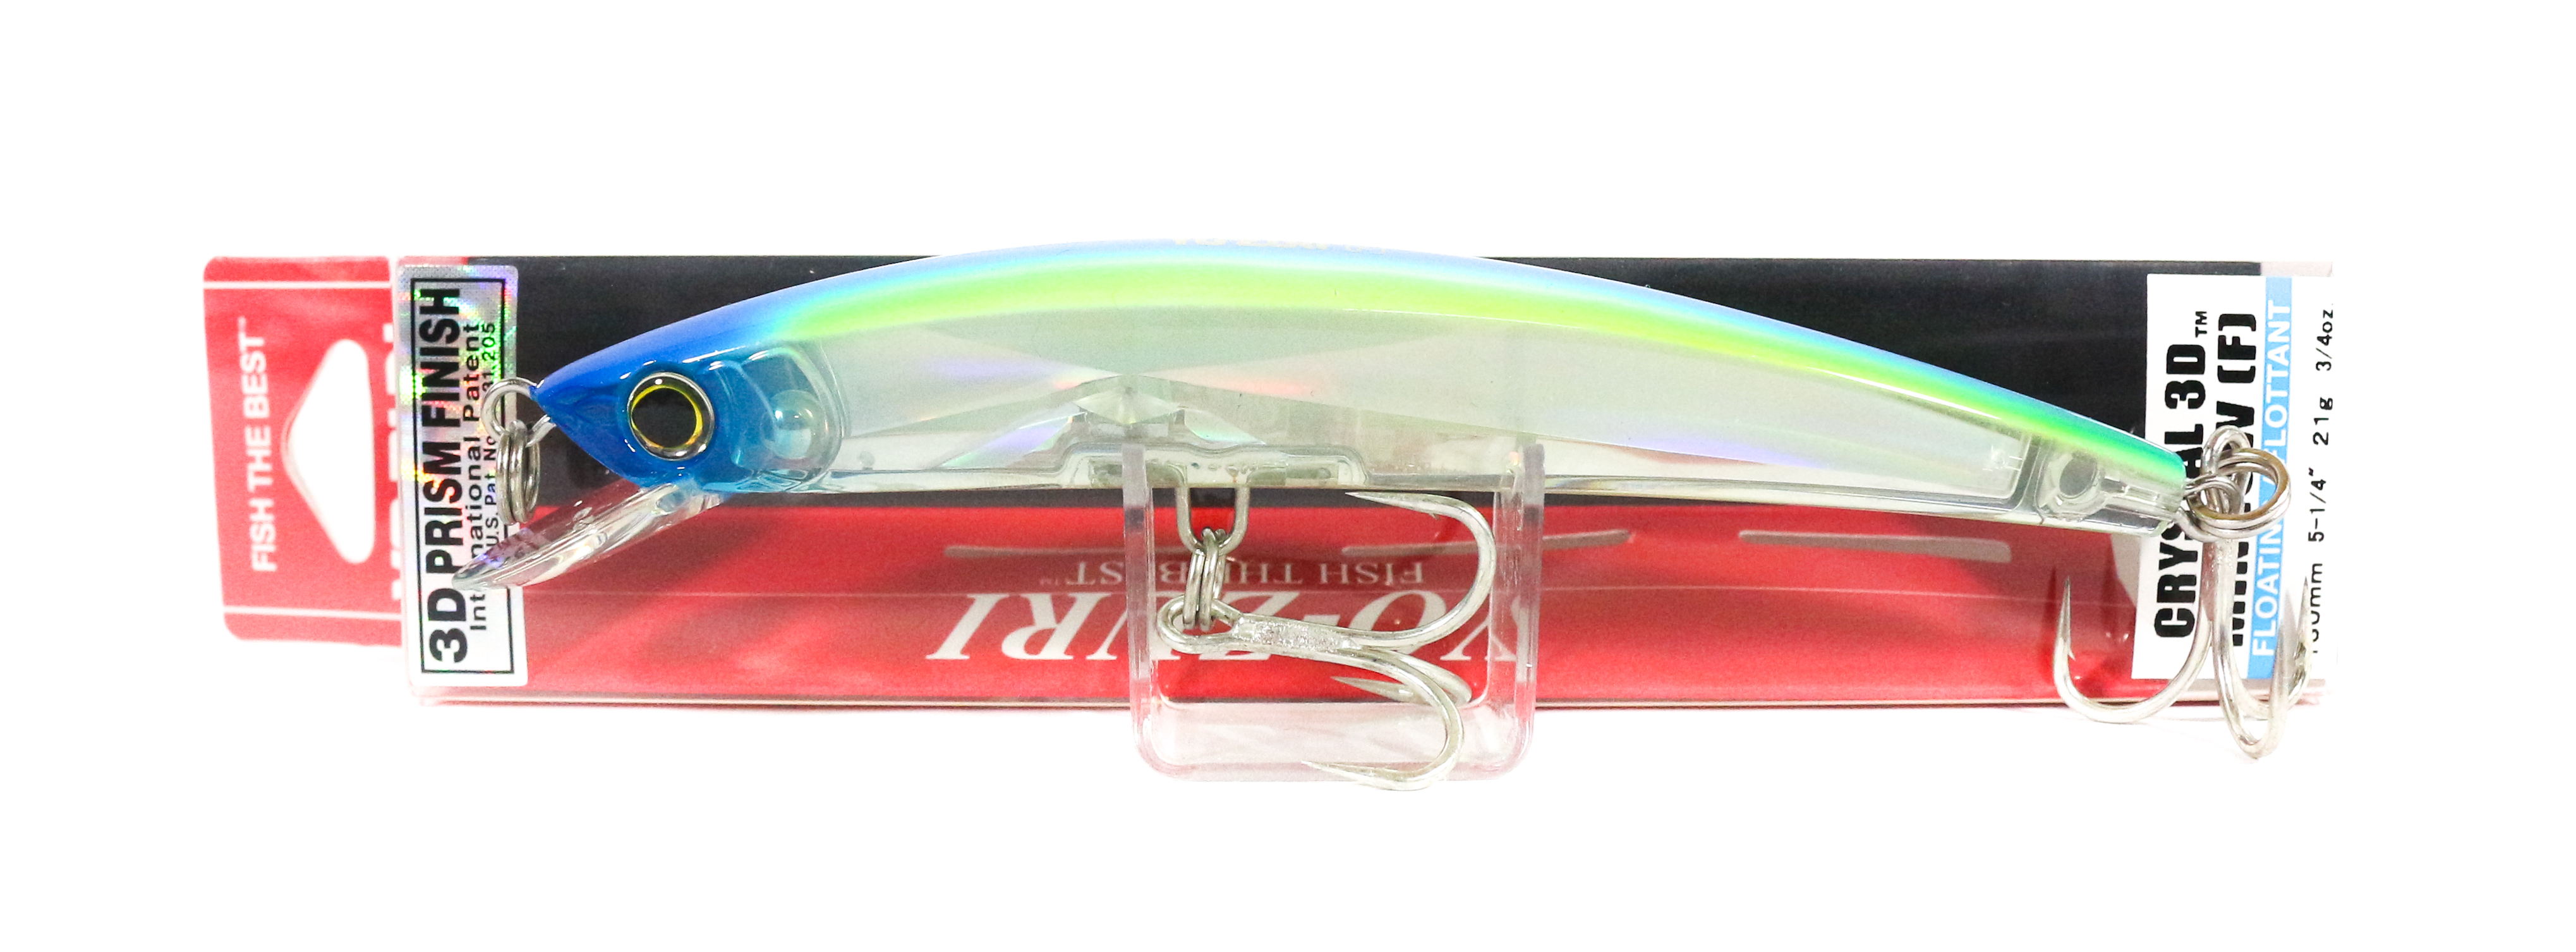 Yo Zuri 3D Crystal Minnow 130 mm Floating Lure F1147-C58 (5846)